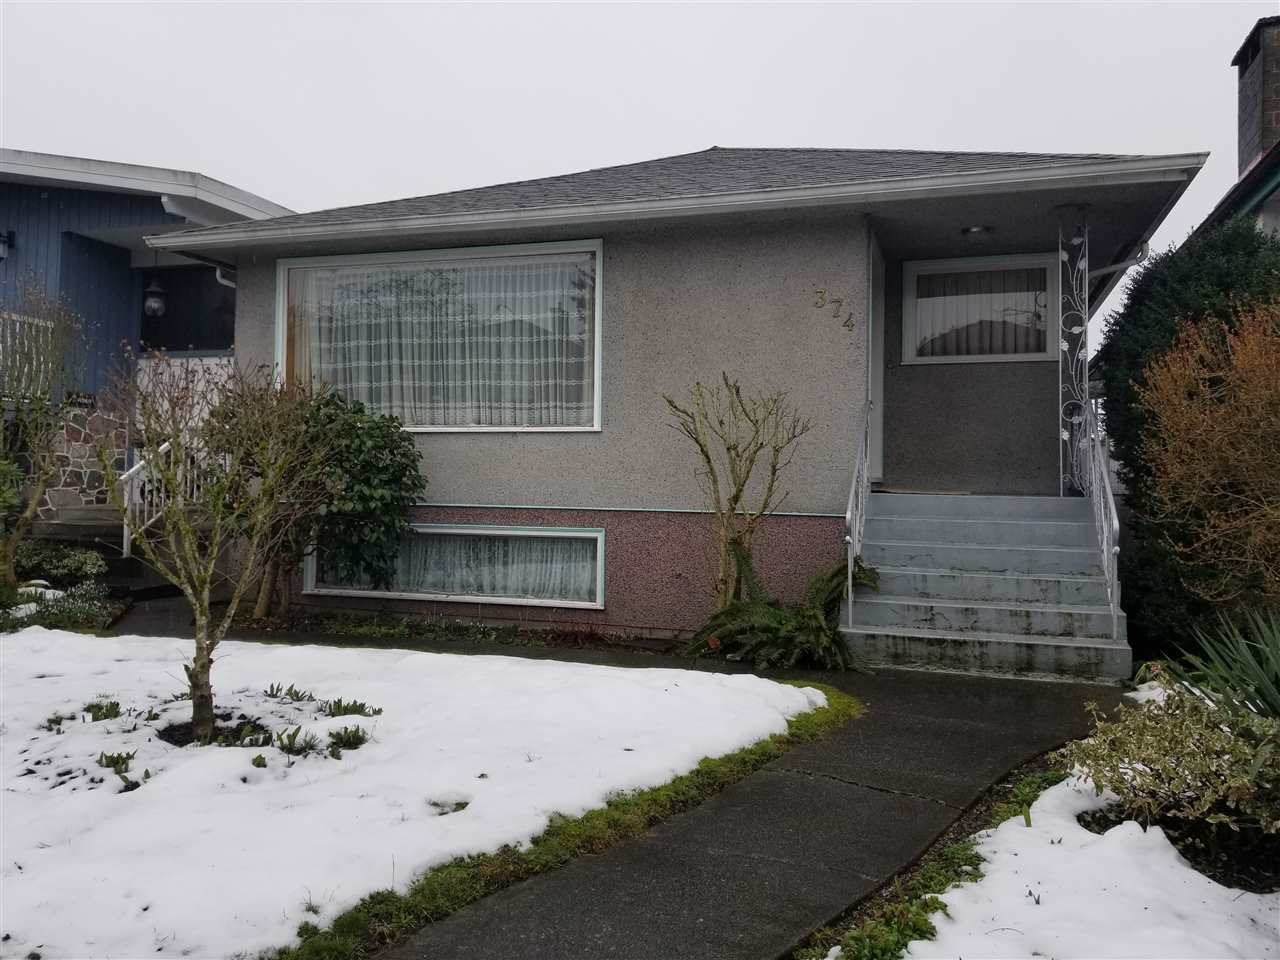 Main Photo: 374 EAST 46 Avenue in Vancouver: Main House for sale (Vancouver East)  : MLS®# R2243065